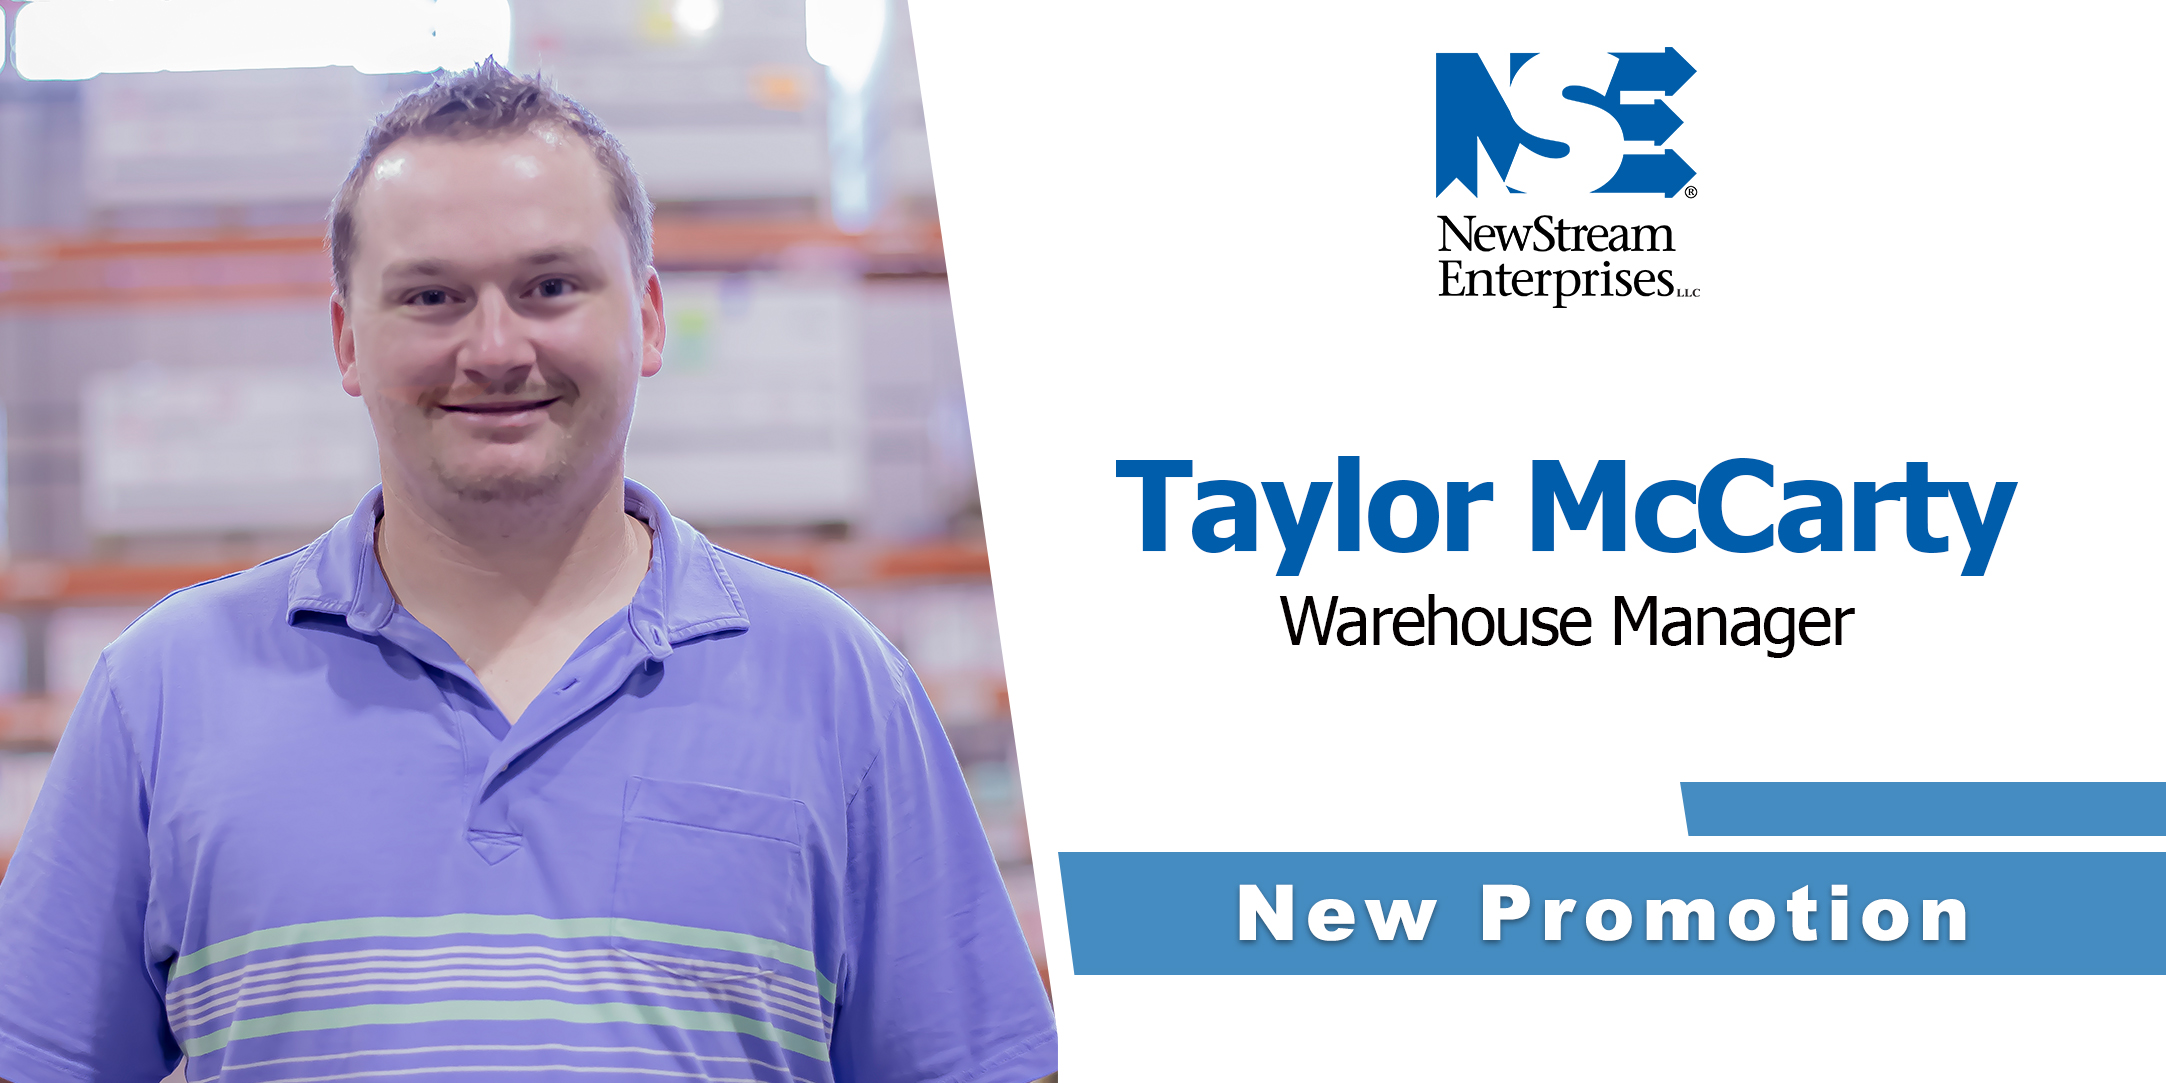 Taylor McCarty Promotion News-1